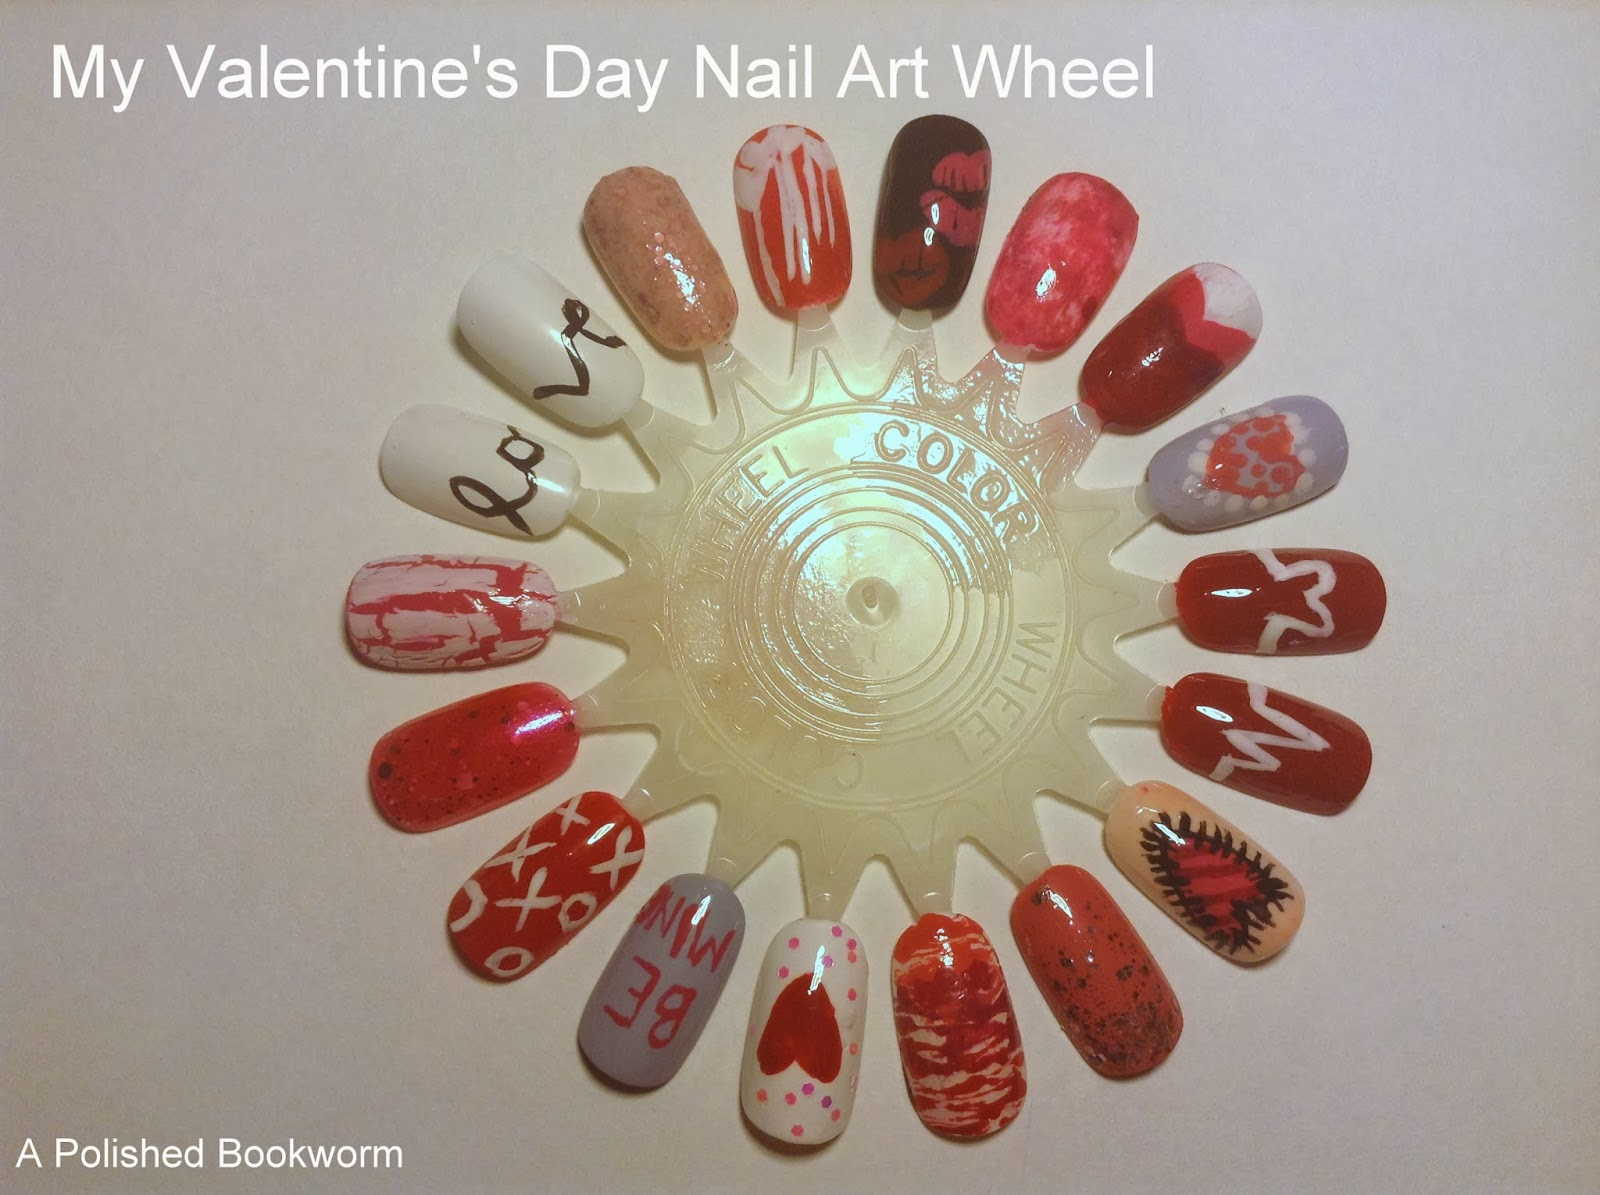 18 Nail Art Ideas For Valentines Day